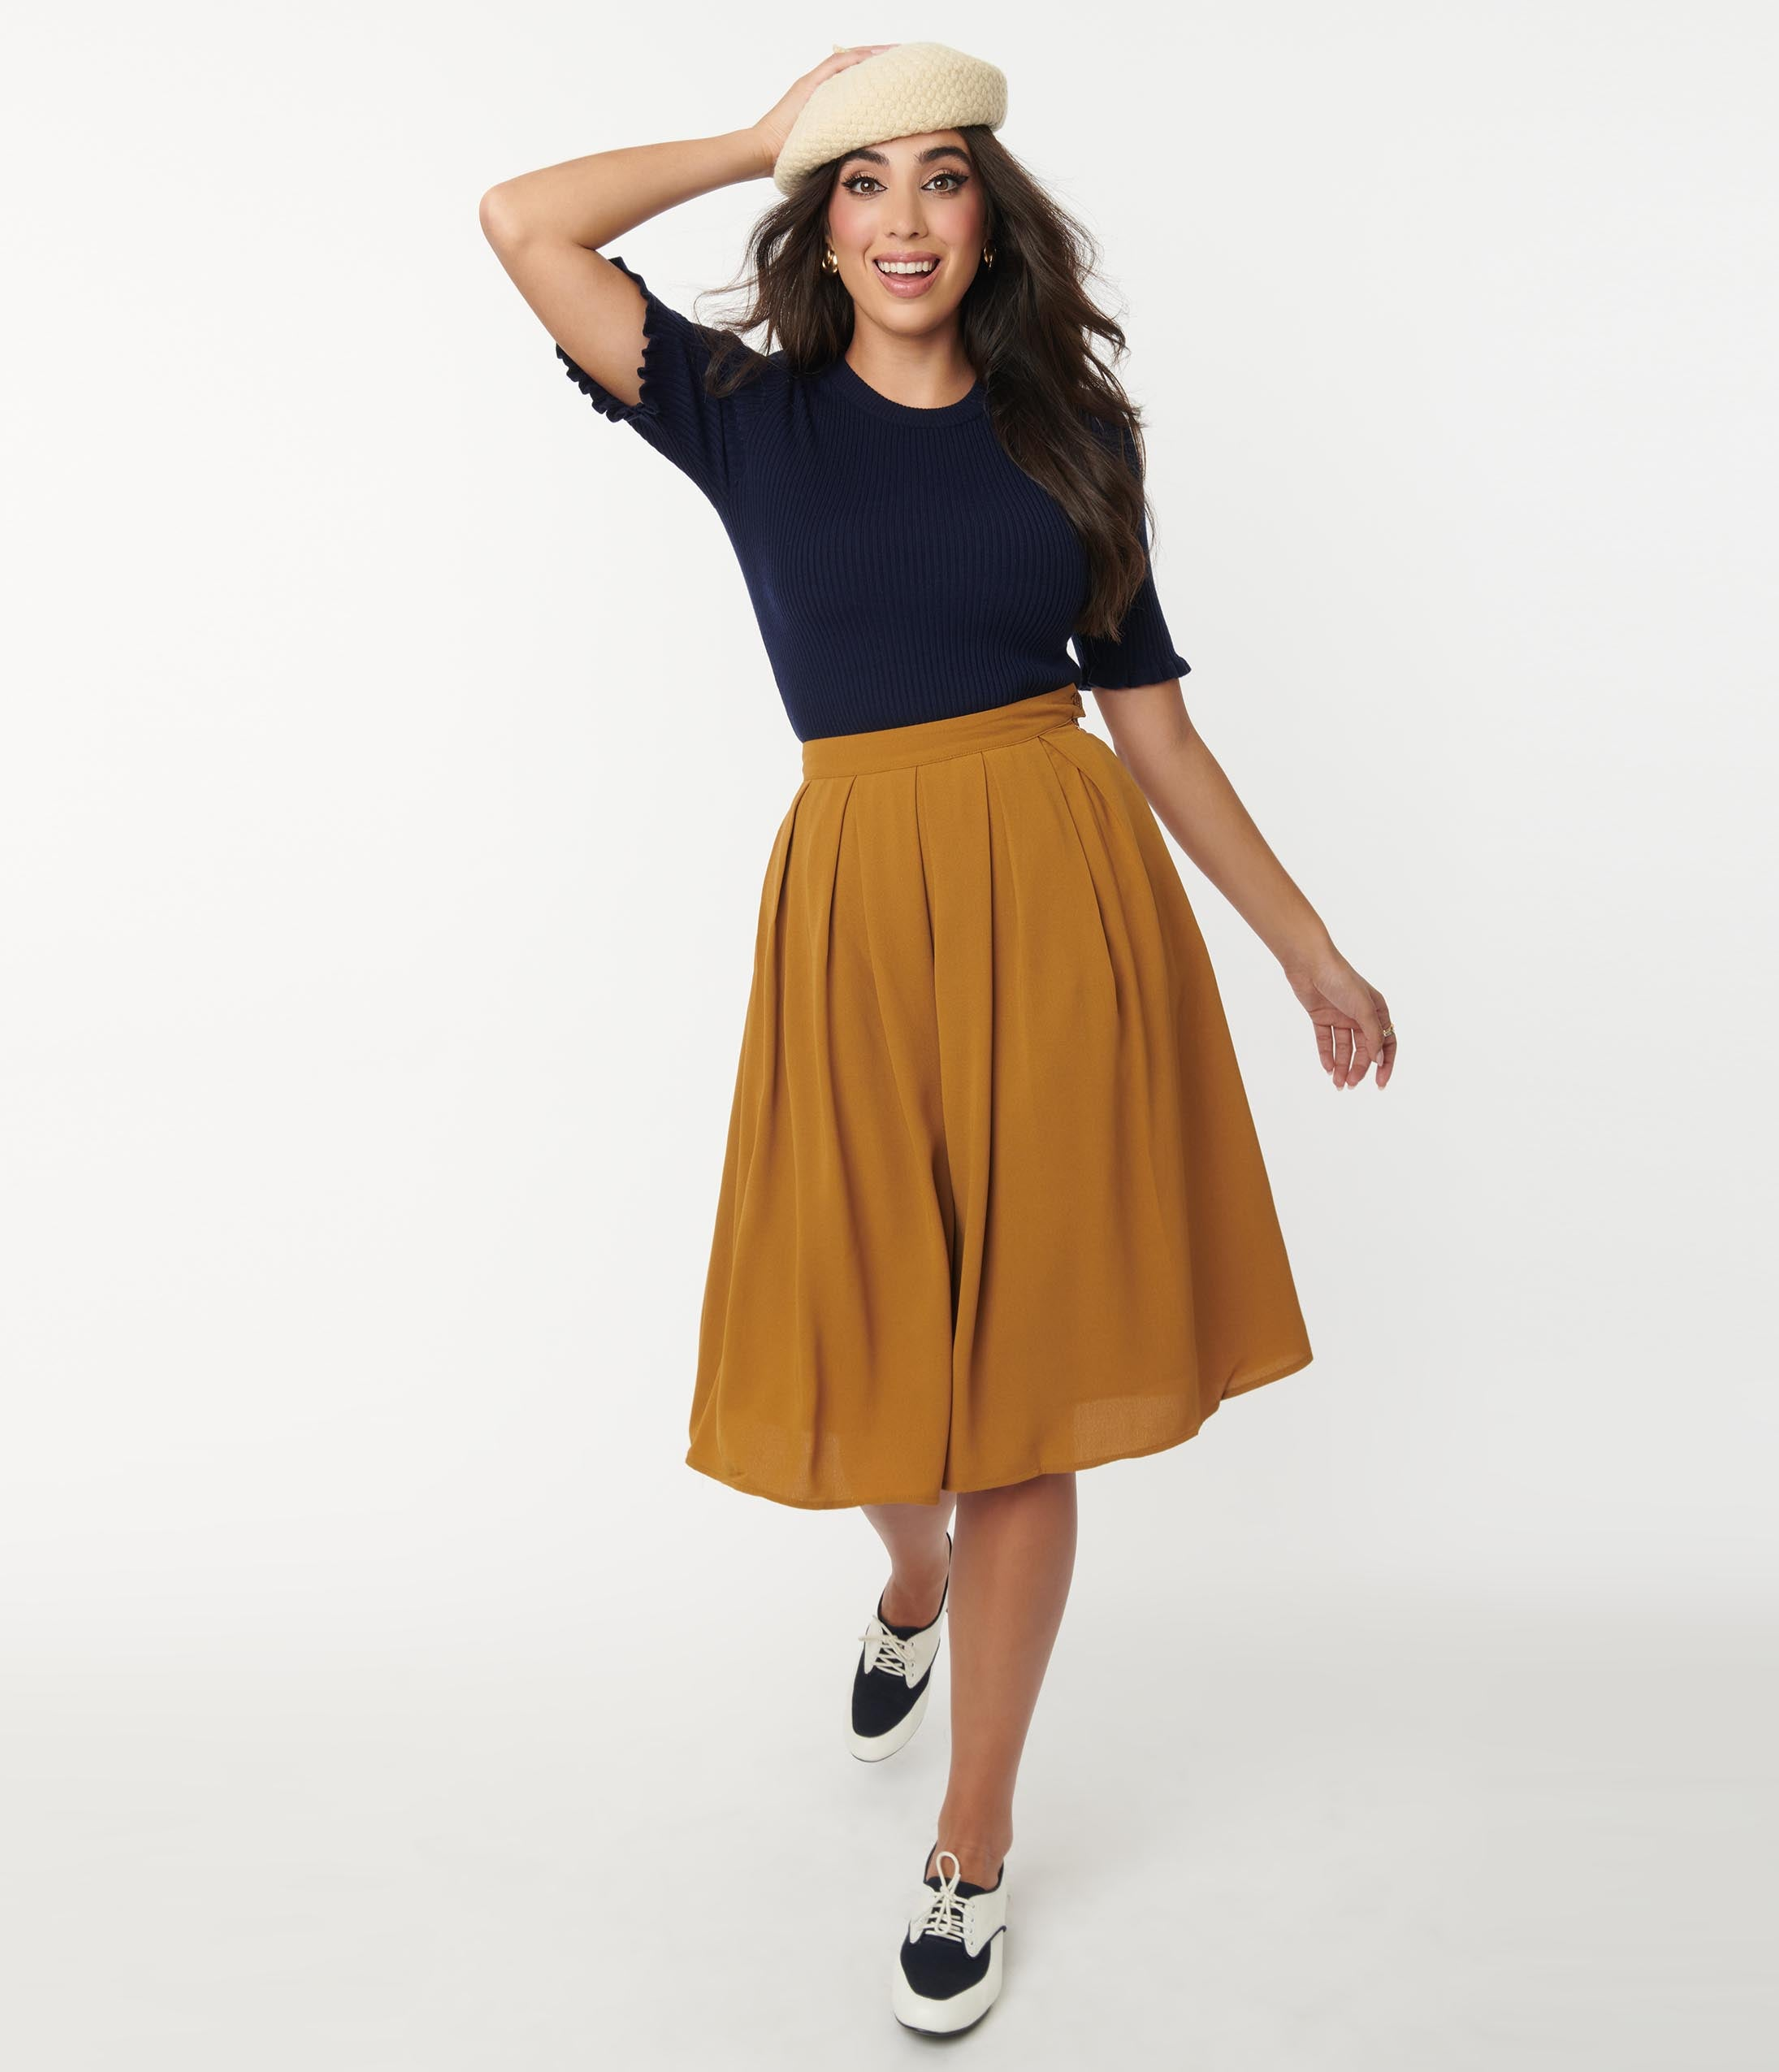 1960s Style Clothing & 60s Fashion Camel Brown Pleated Midi Skirt $58.00 AT vintagedancer.com